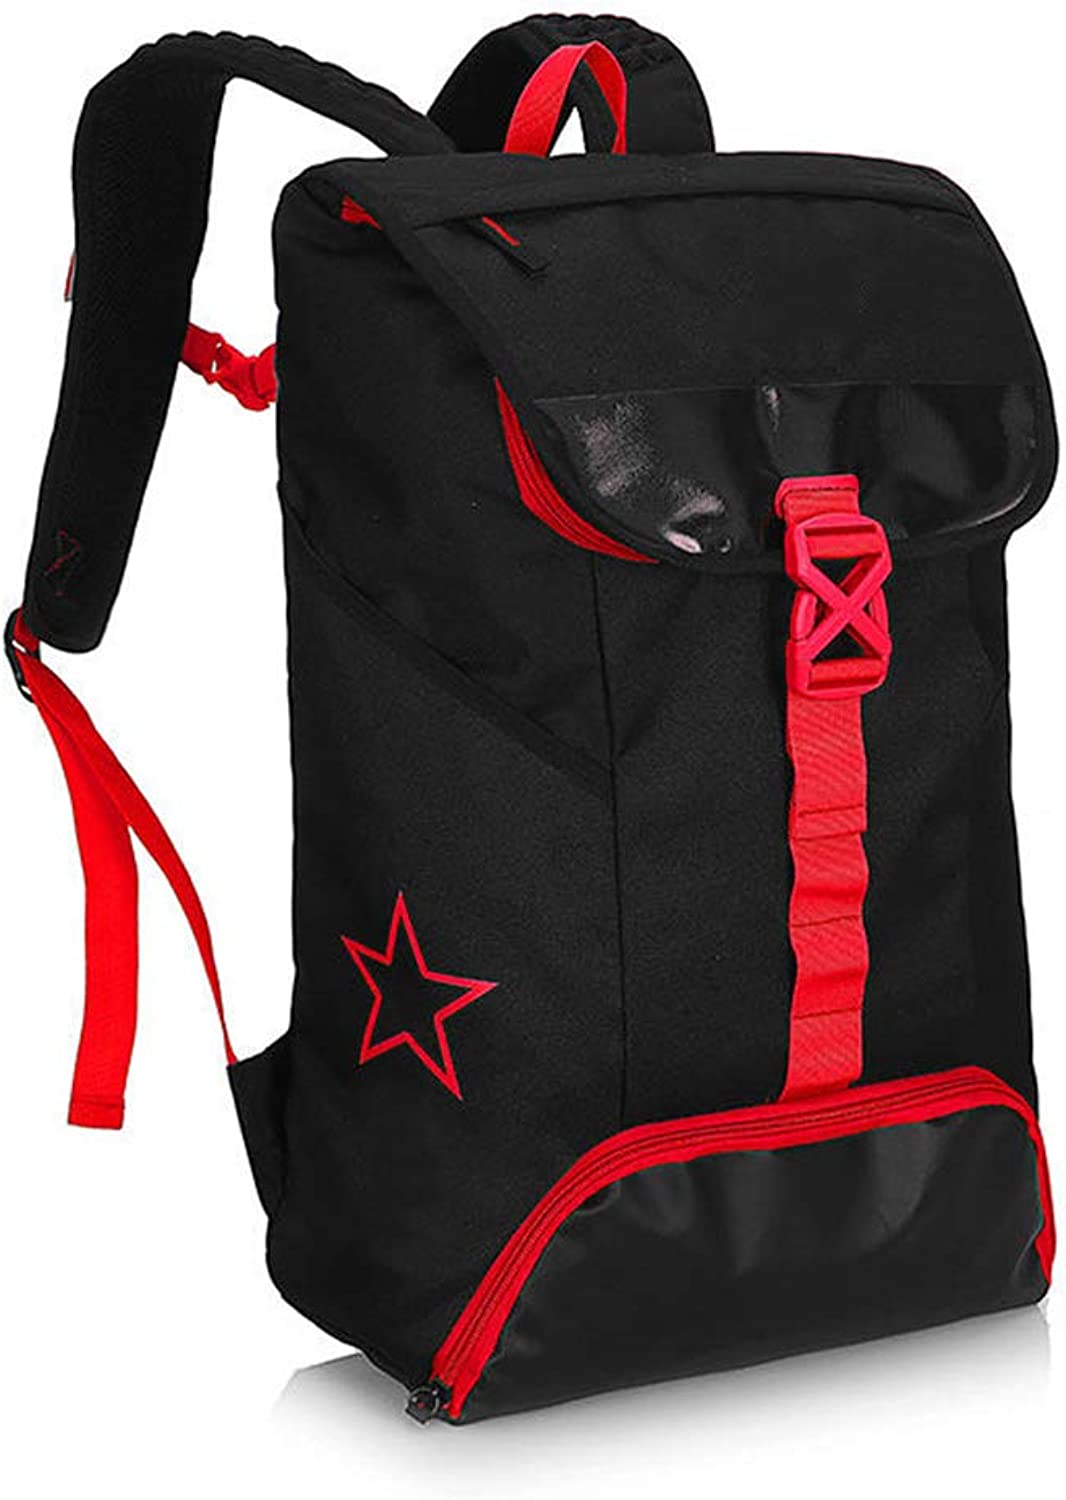 Lixin Travel Bag Large Capacity Double Shoulder Mountaineering Bag (color   Black Red, Size   51  35cm)